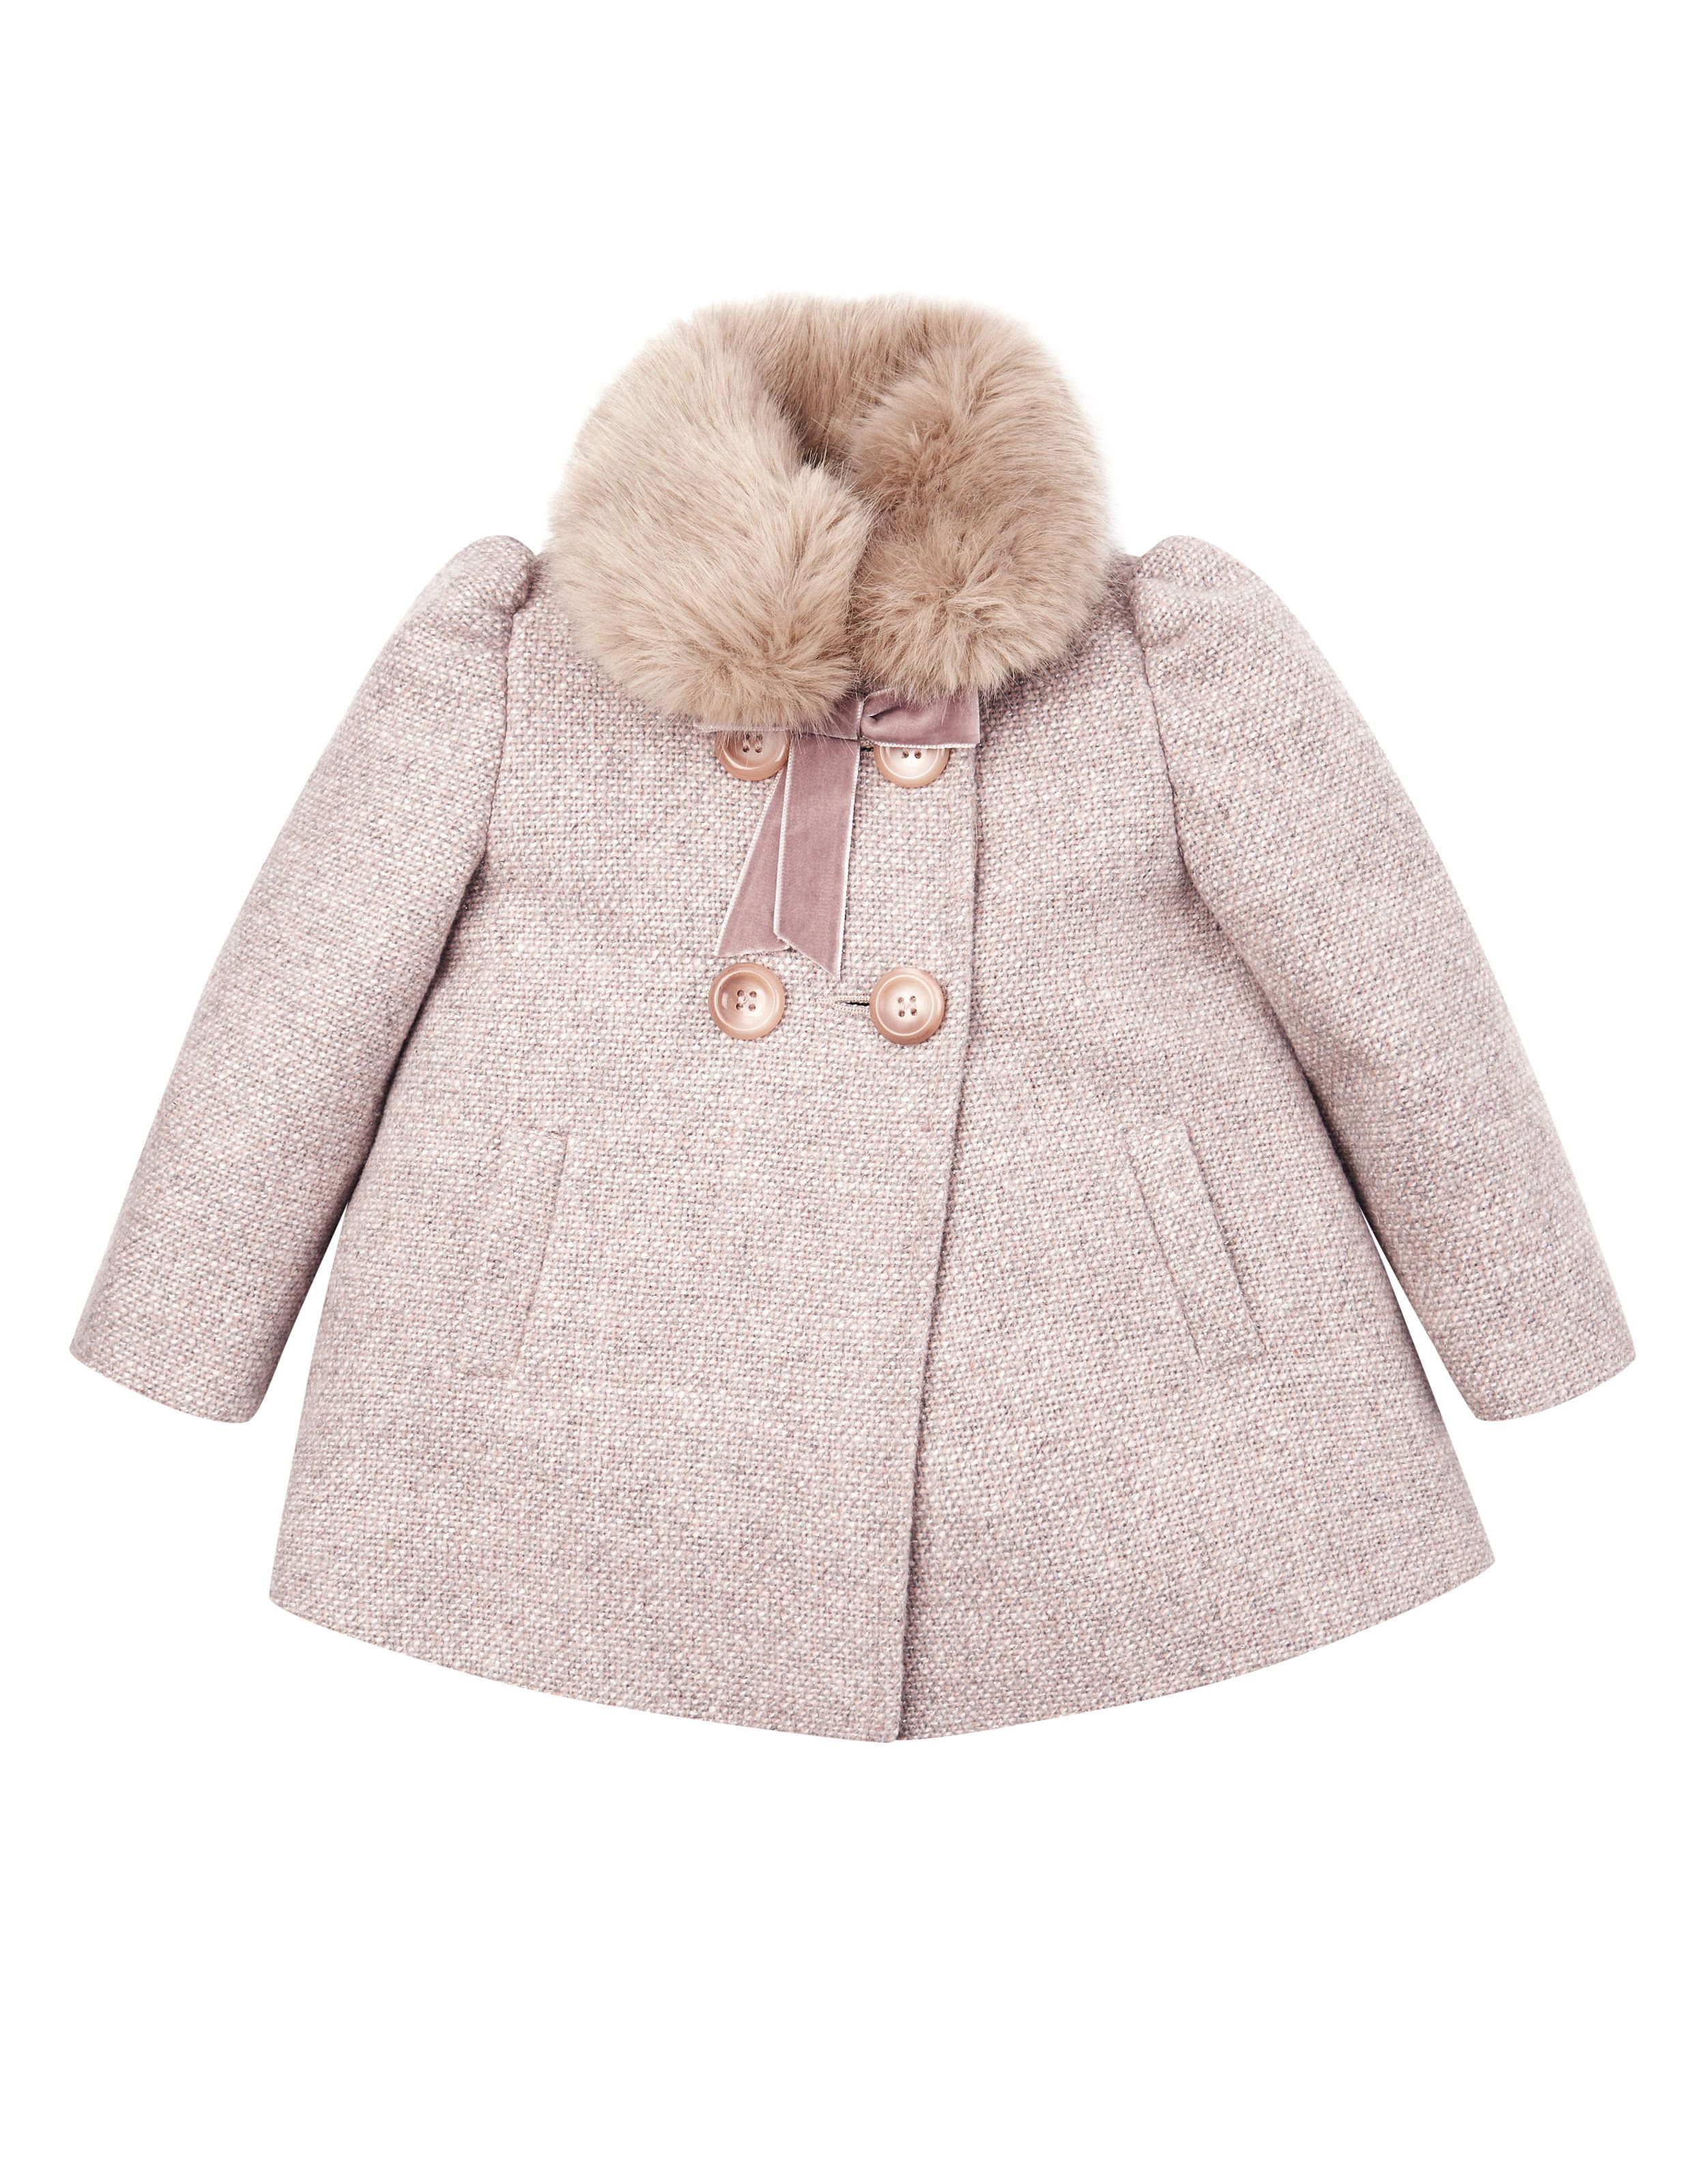 011a2a59e Baby Claire Coat with Fur